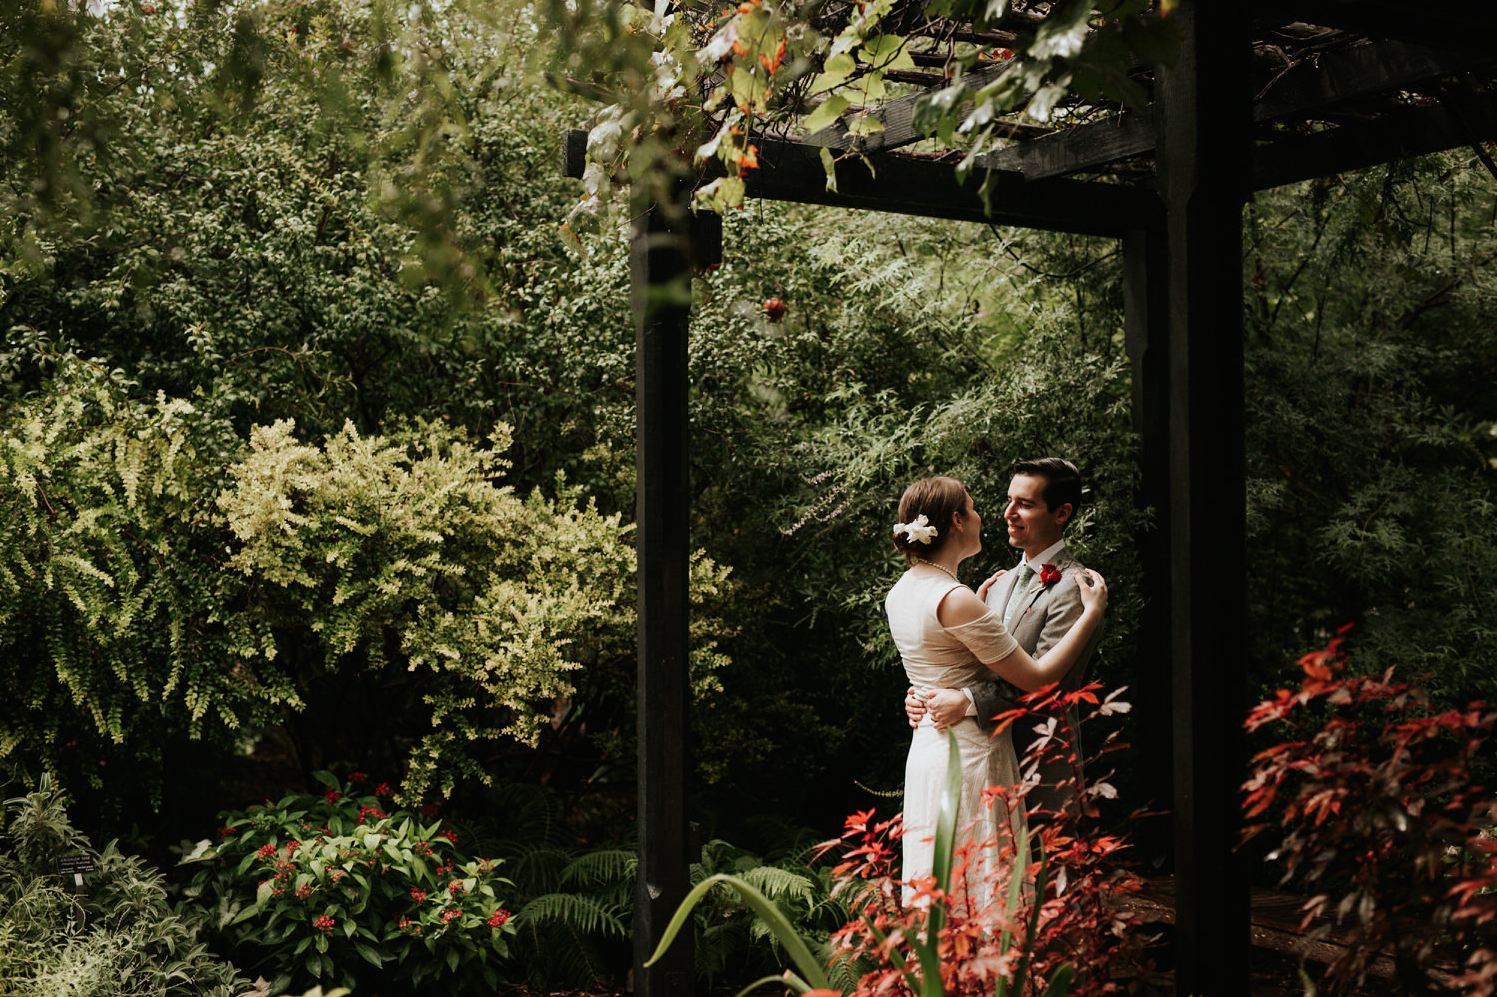 A wedding couple is embracing each other at the San Antonio Botanical Garden .